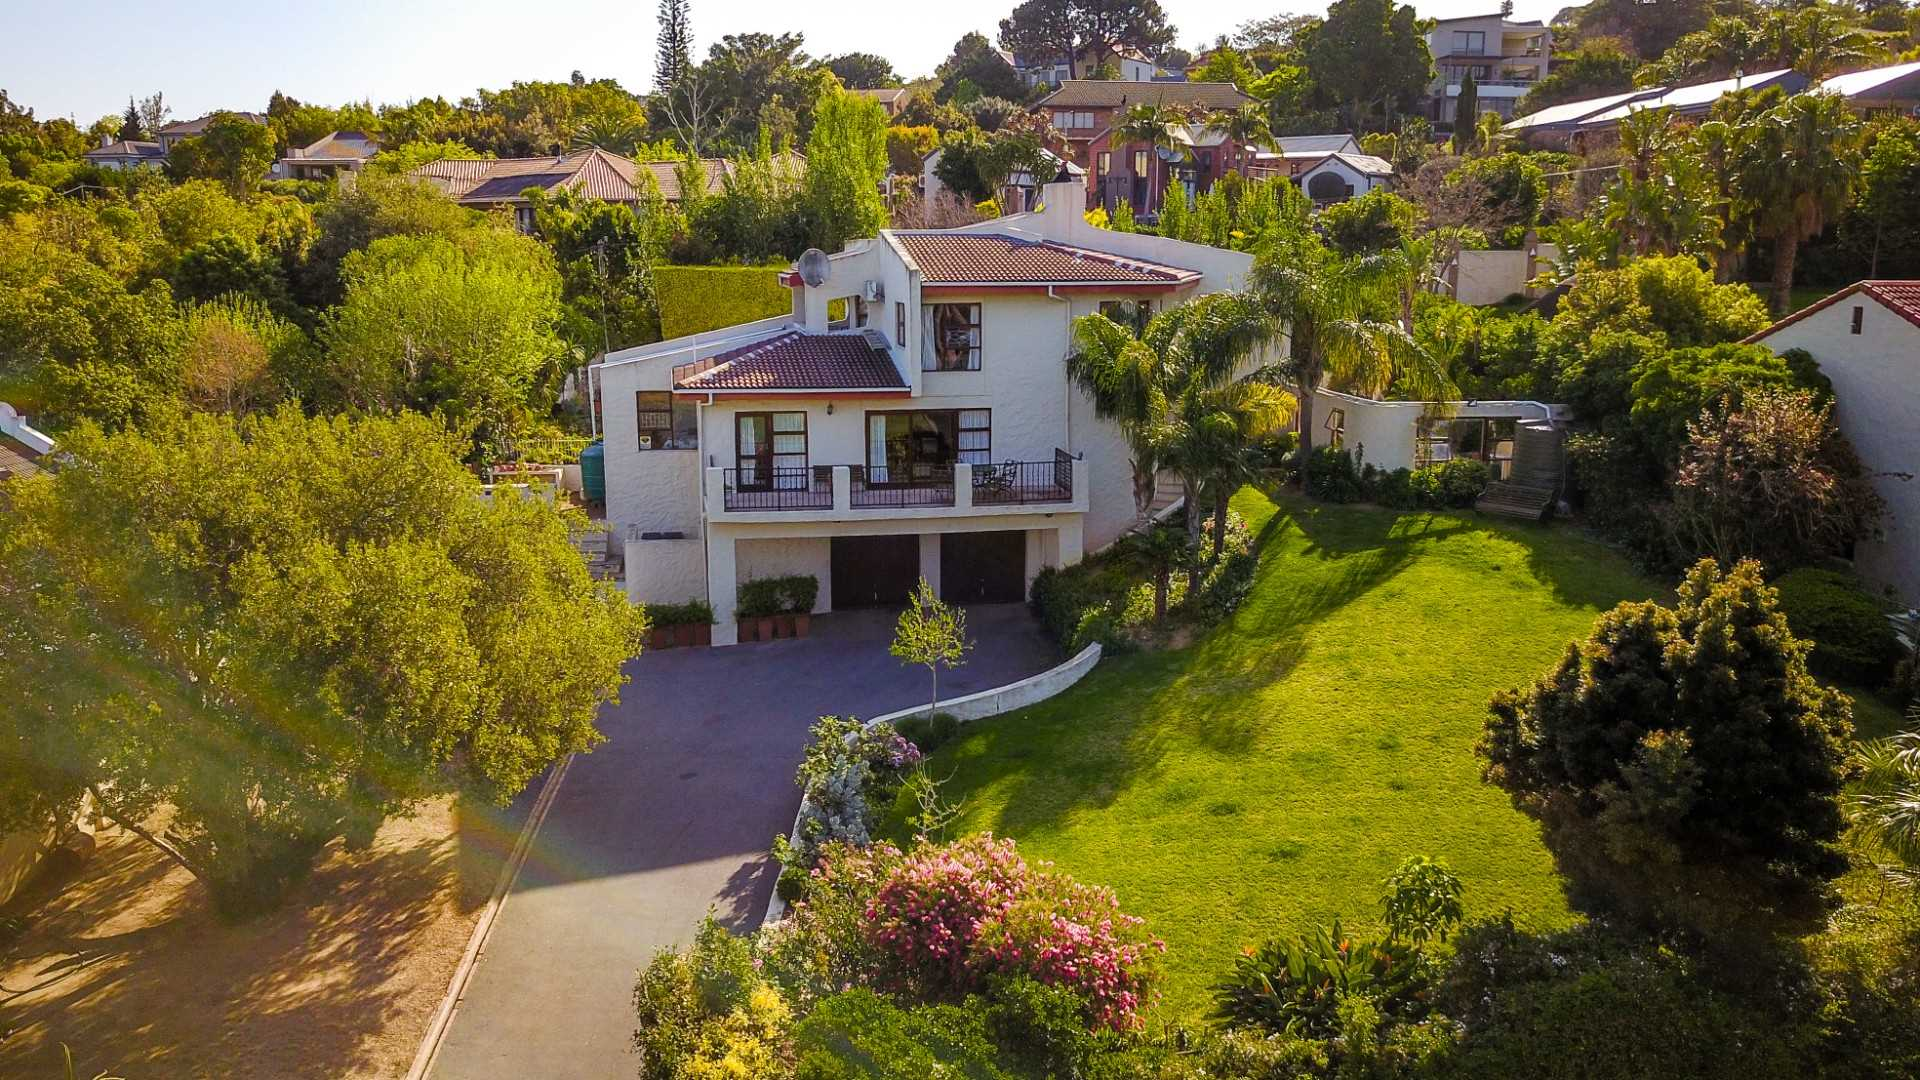 Characterful Home with Breathtaking Views in Prime Location